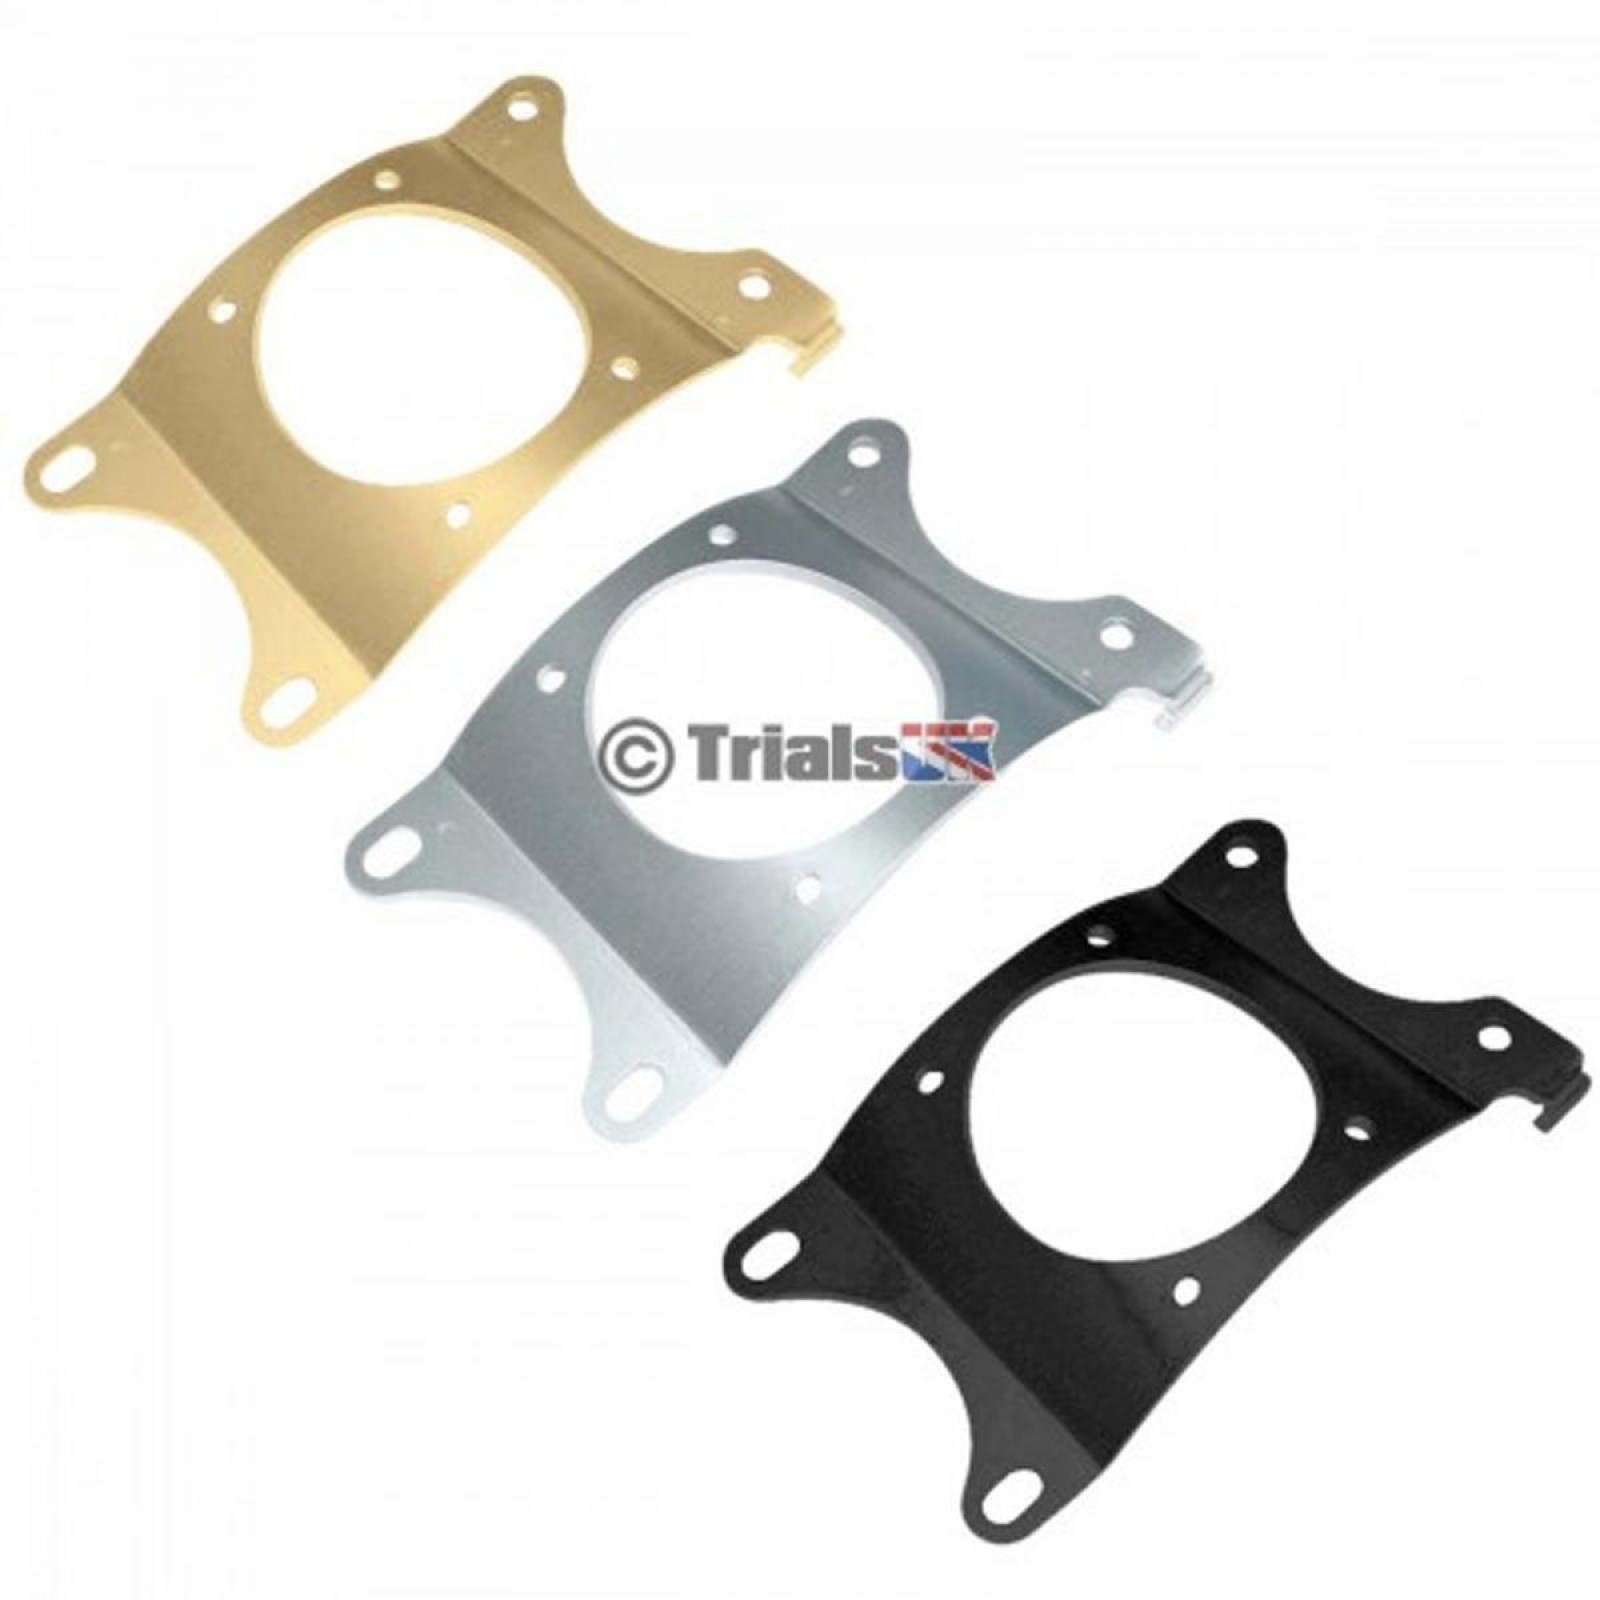 RQF Honda Montesa 4RT Front Mudguard Brace - Available In 3 Colours